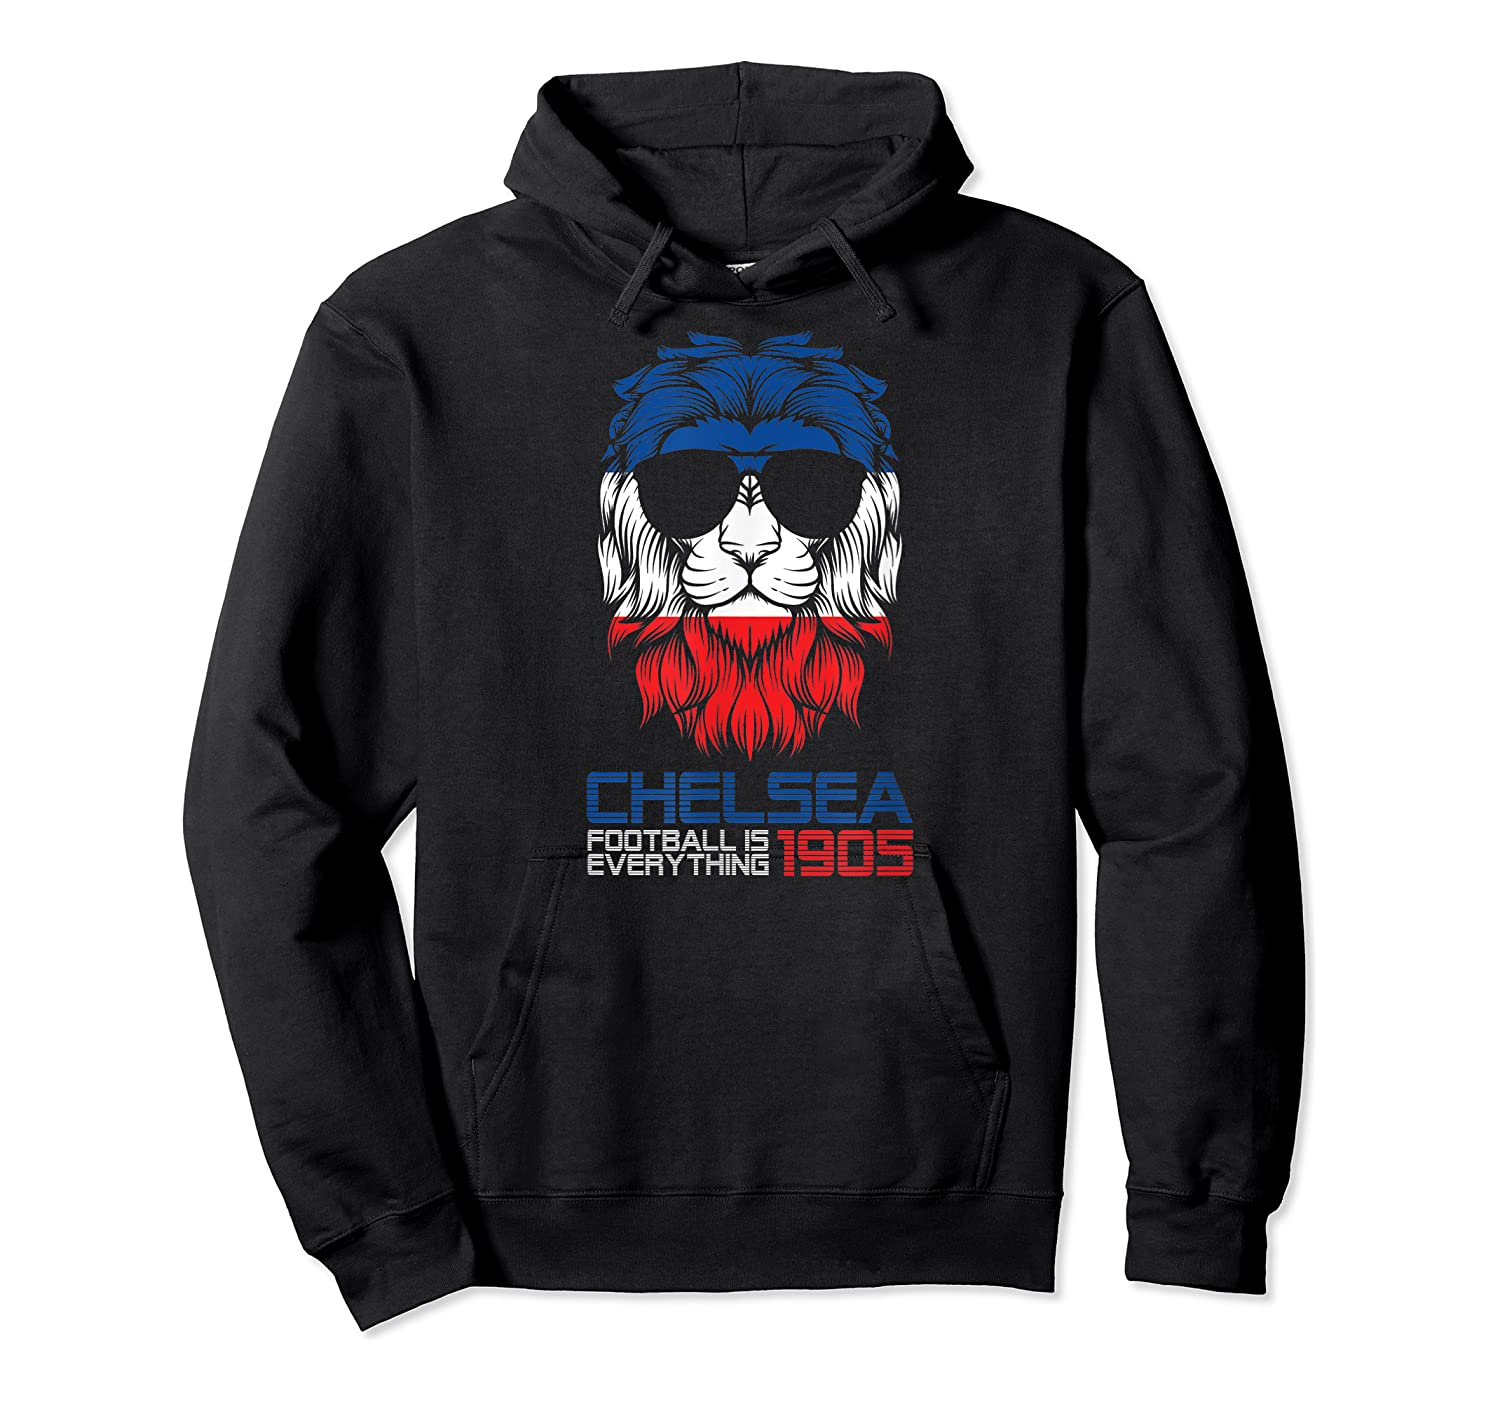 Football Is Everything - Chelsea Lion Pride Retro T-shirt Unisex Pullover Hoodie